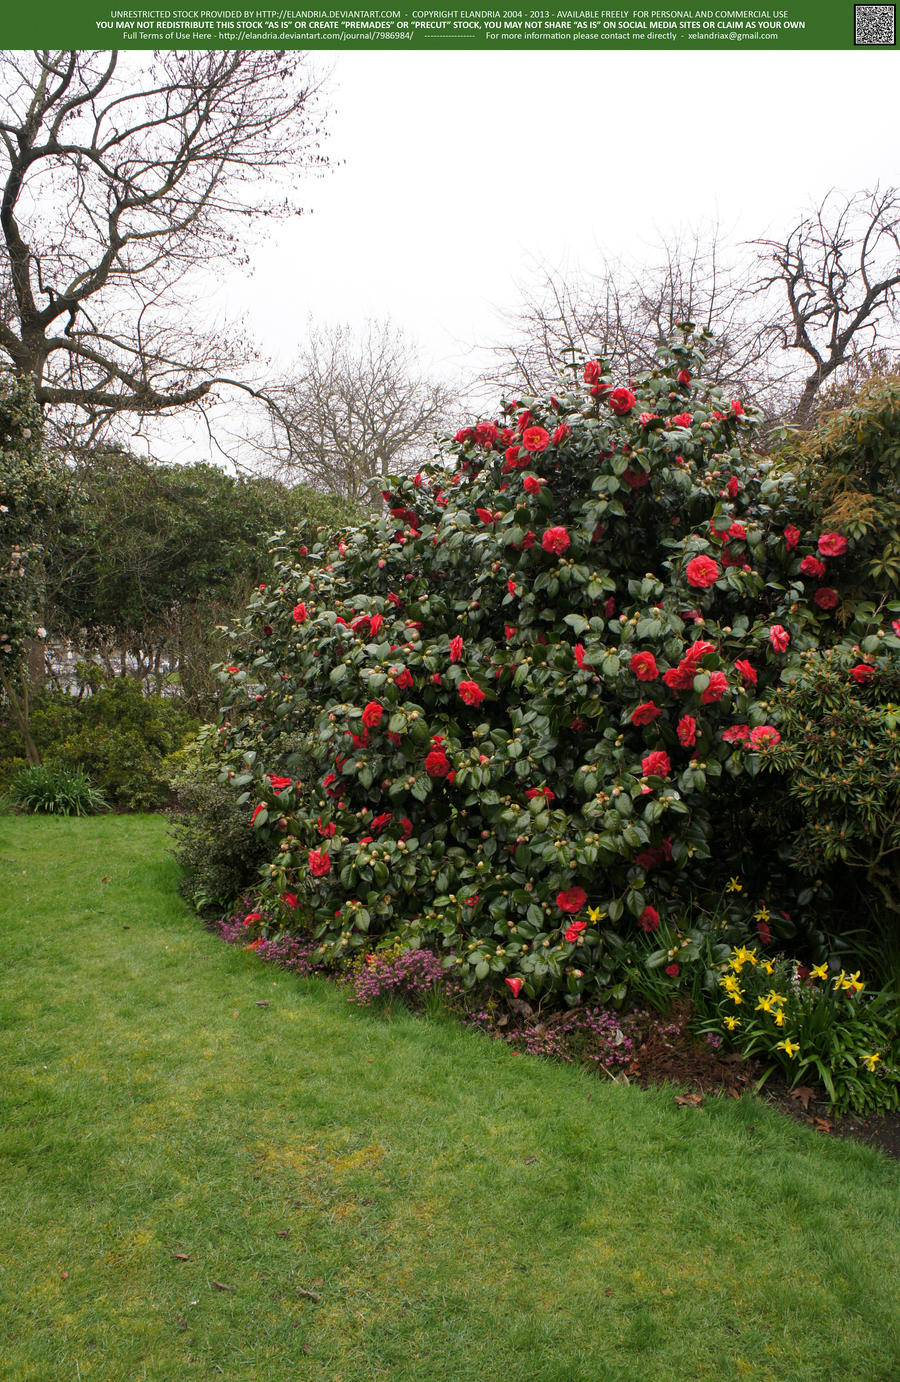 Into the Rose Garden 3 UNRESTRICTED by Elandria